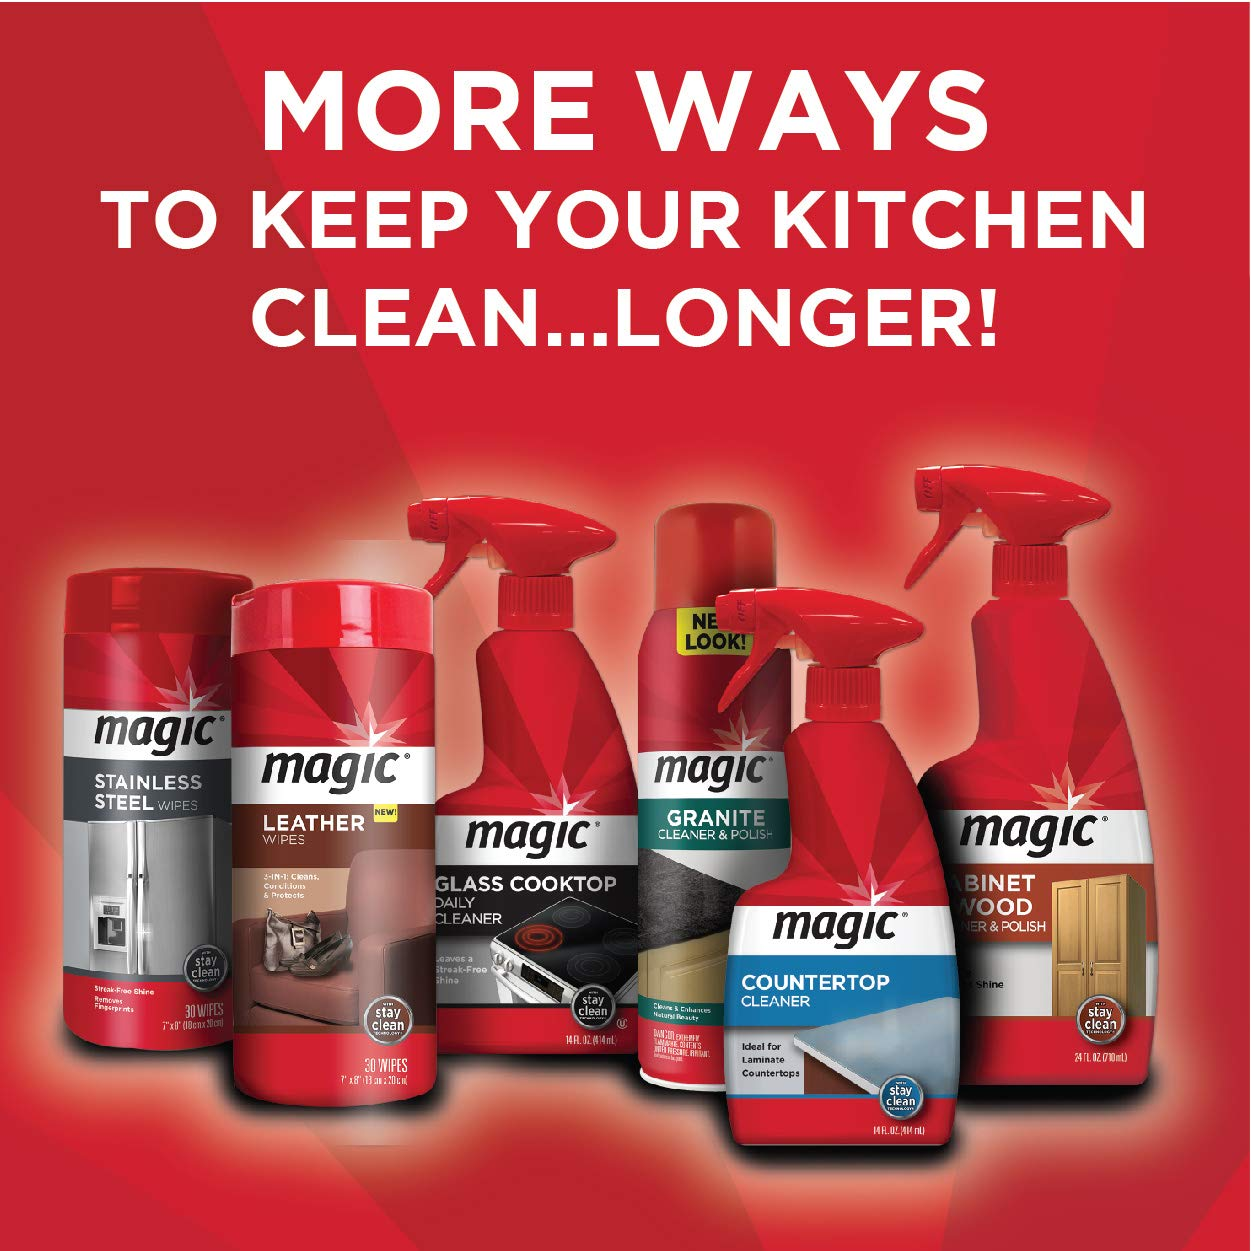 MAGIC Glass Cooktop Cream Cleaner & Polish - 16 oz. and Daily Cleaner - 14 Ounce - Cleans and Protects Glass and Ceramic Smooth Top Ranges with its Gentle Formula by MAGIC (Image #6)